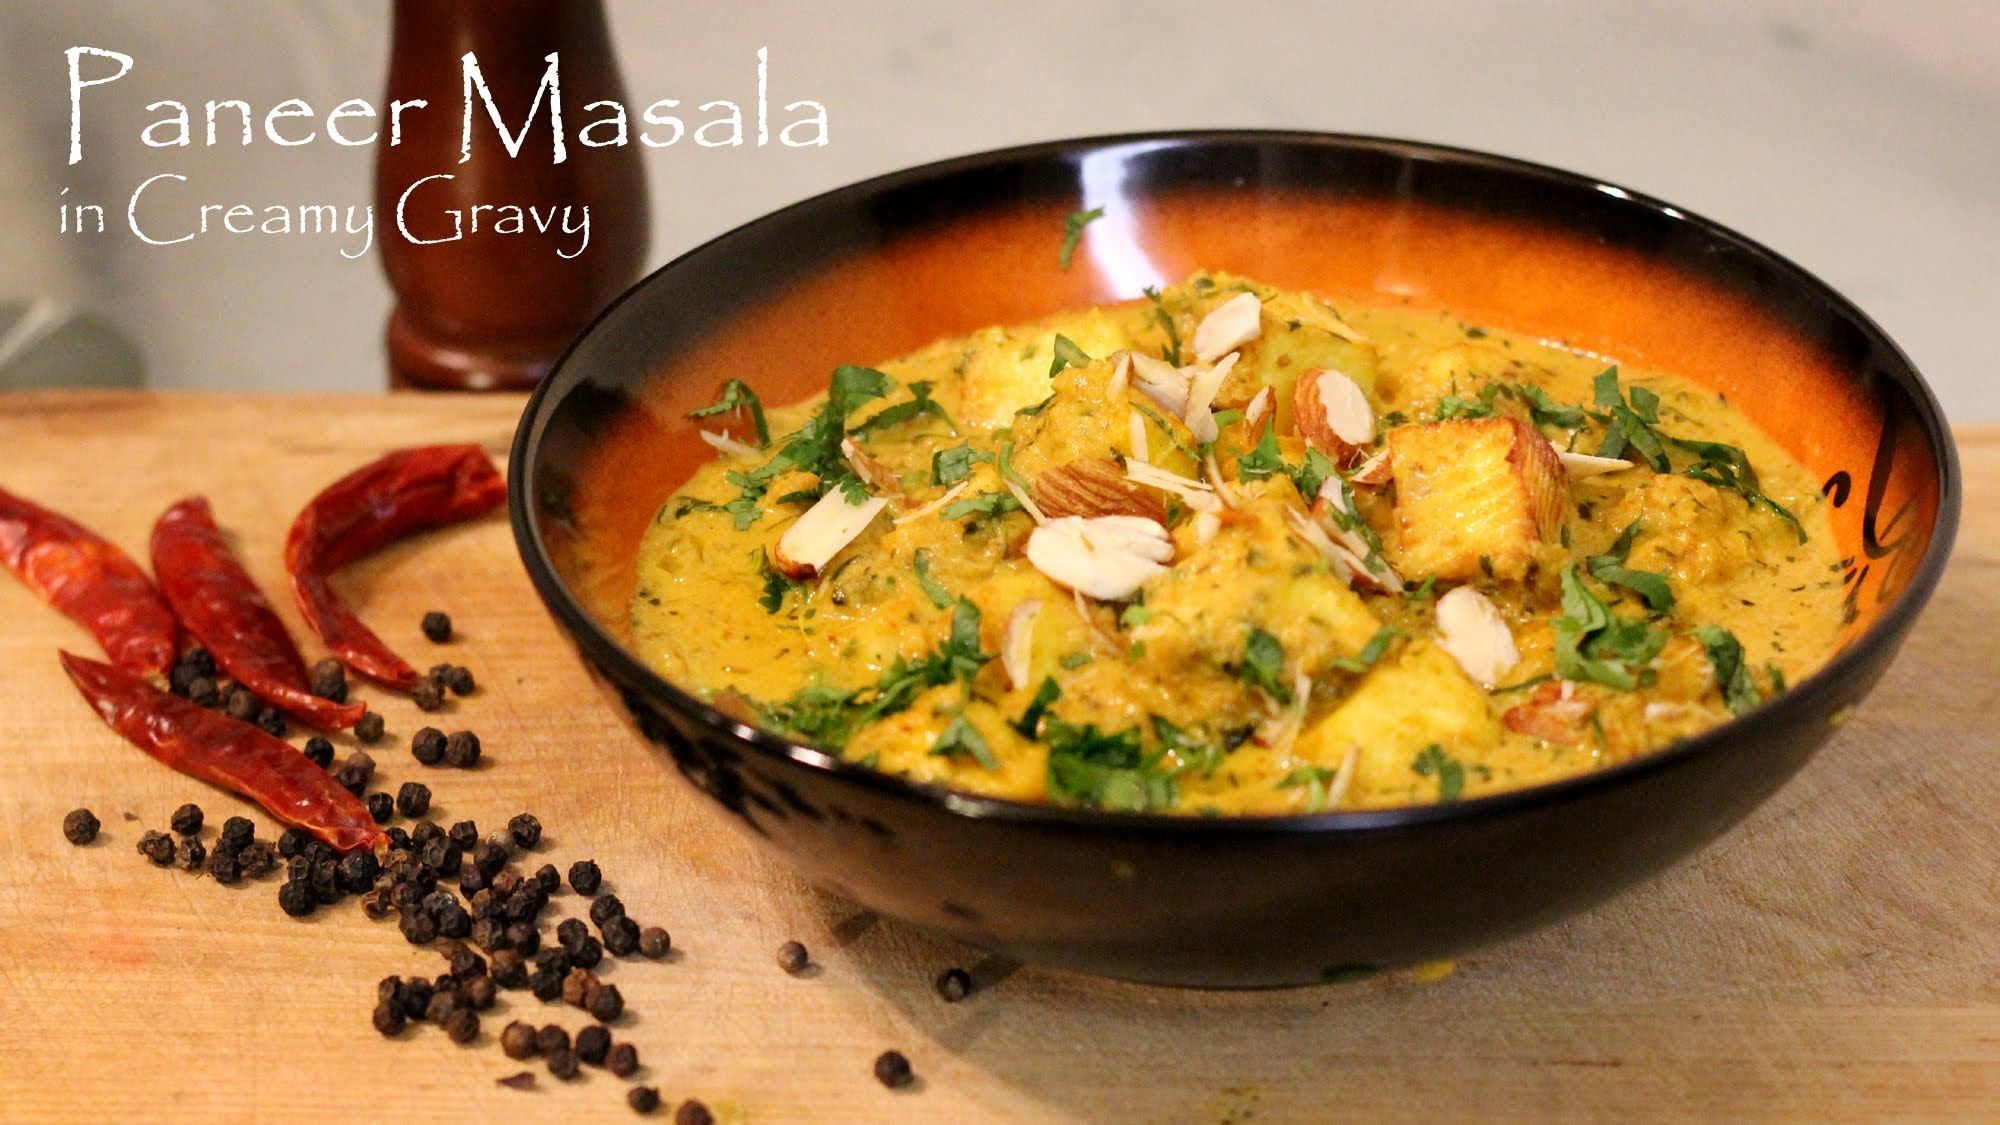 Paneer masala recipe resturant style indian recipe video indian paneer masala recipe resturant style indian recipe video indian vegetarian recipes click here to visit my youtube page and subscribe for more such forumfinder Image collections